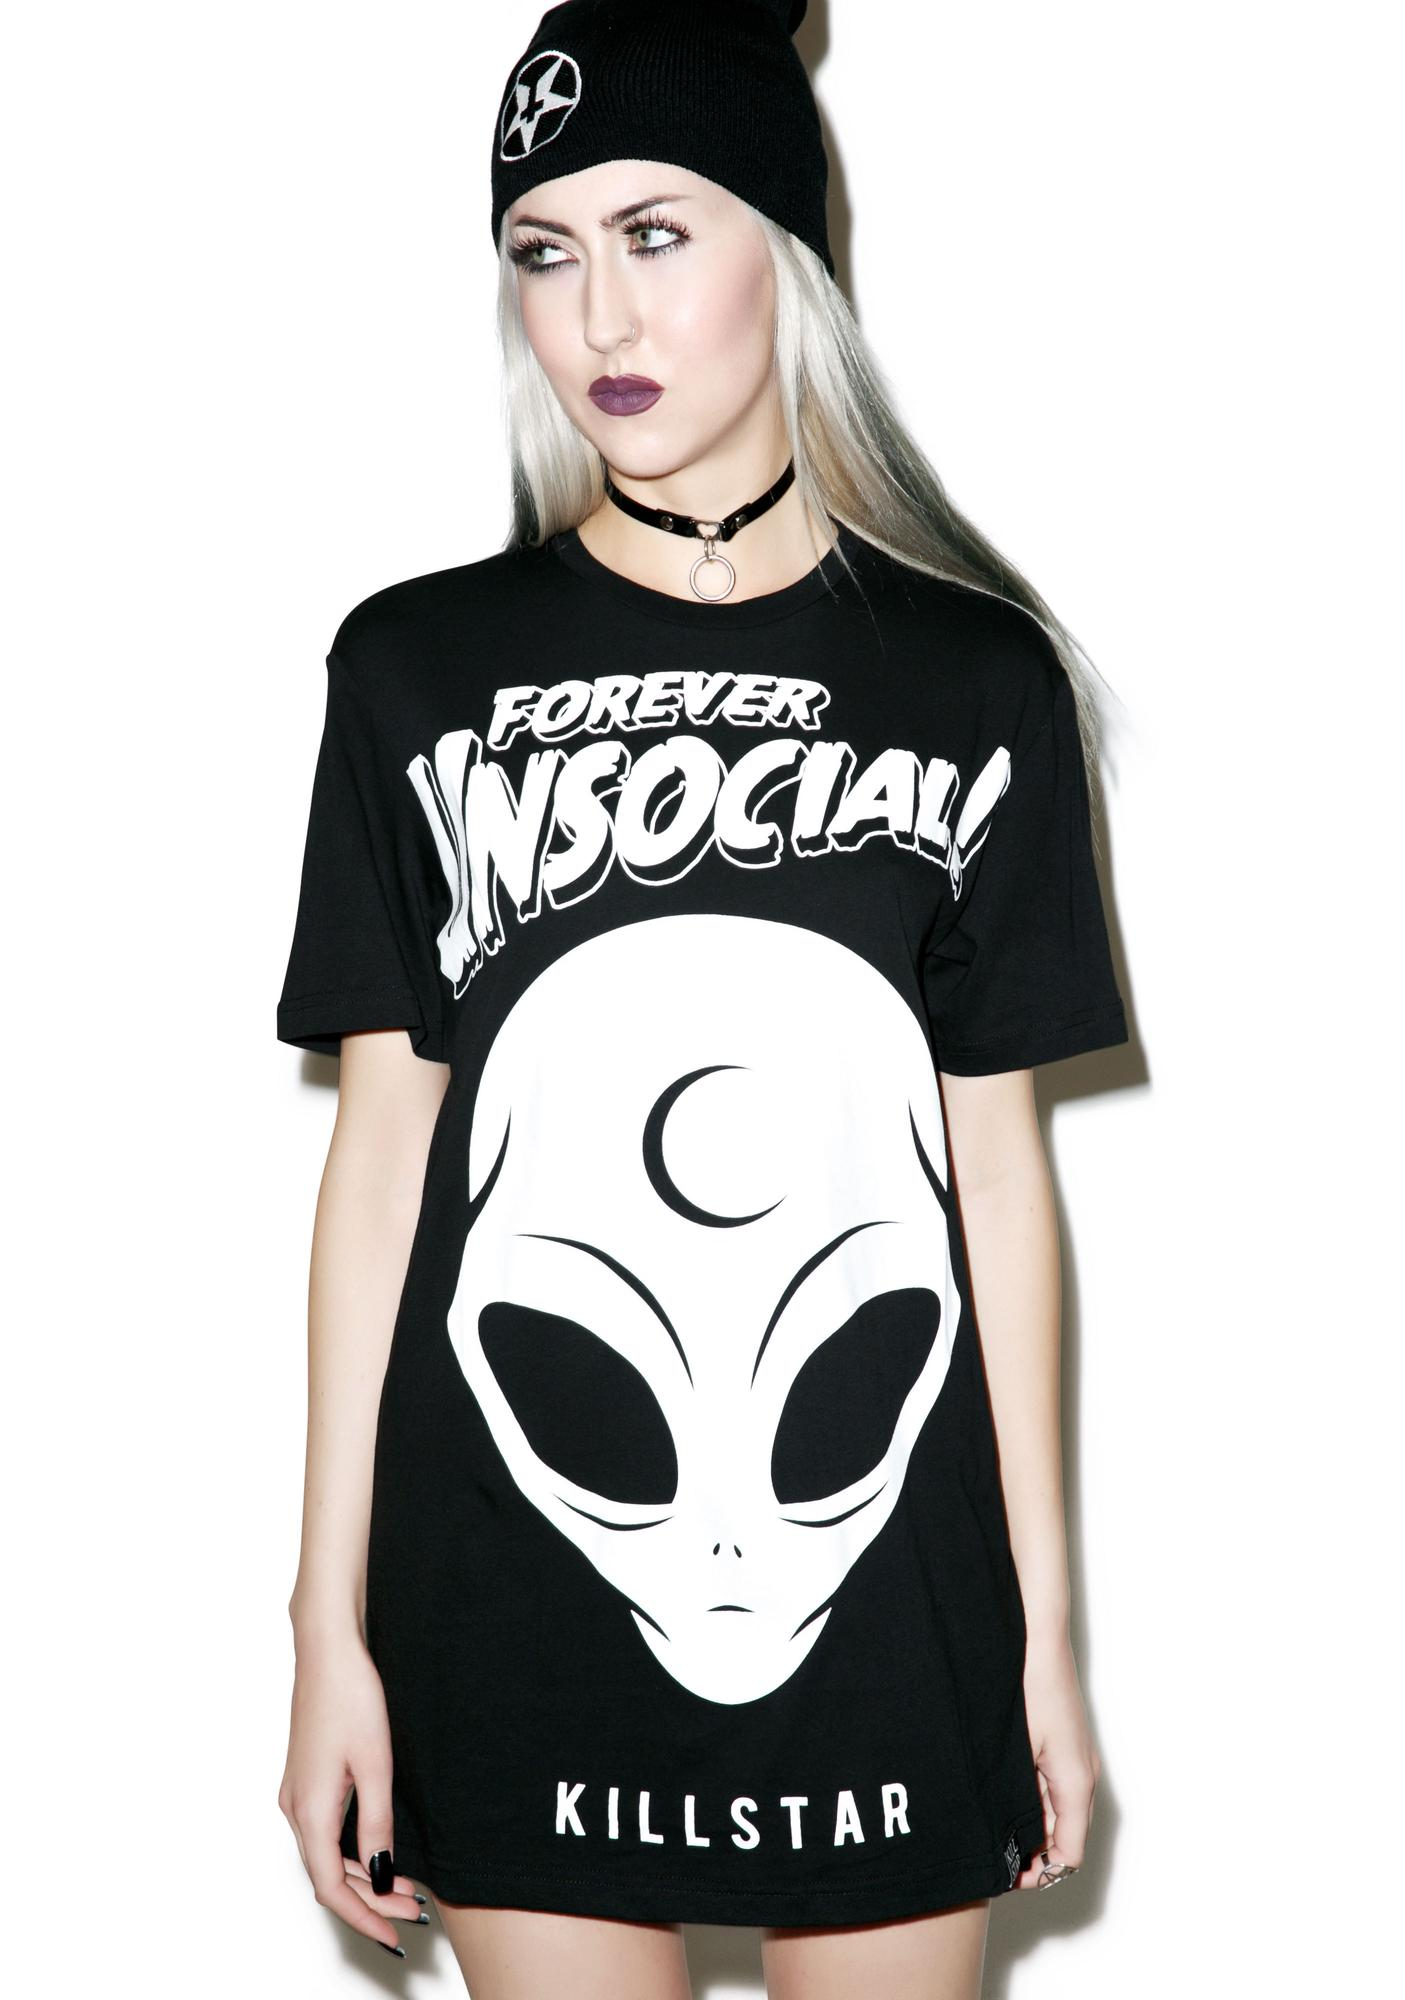 Killstar Unsocial T-Shirt